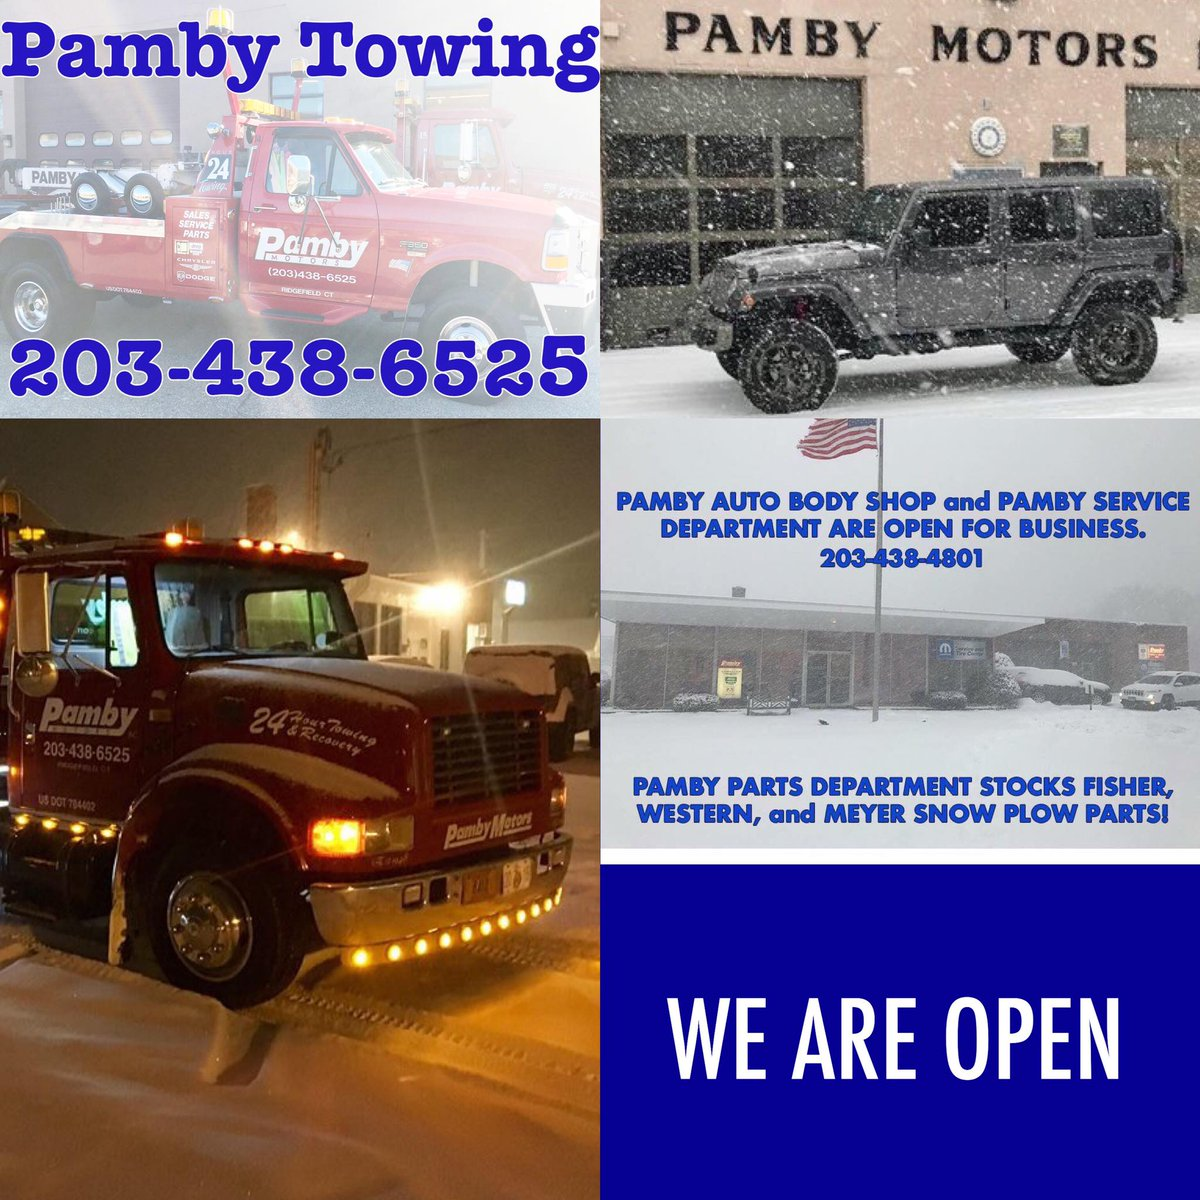 From plow parts and towing to gasoline and vehicle repair - we are here for you. #PambyMotors #PambyZone #PambyRidgefield #PambyJeep #Jeep #RAMTrucks #Dodge ...